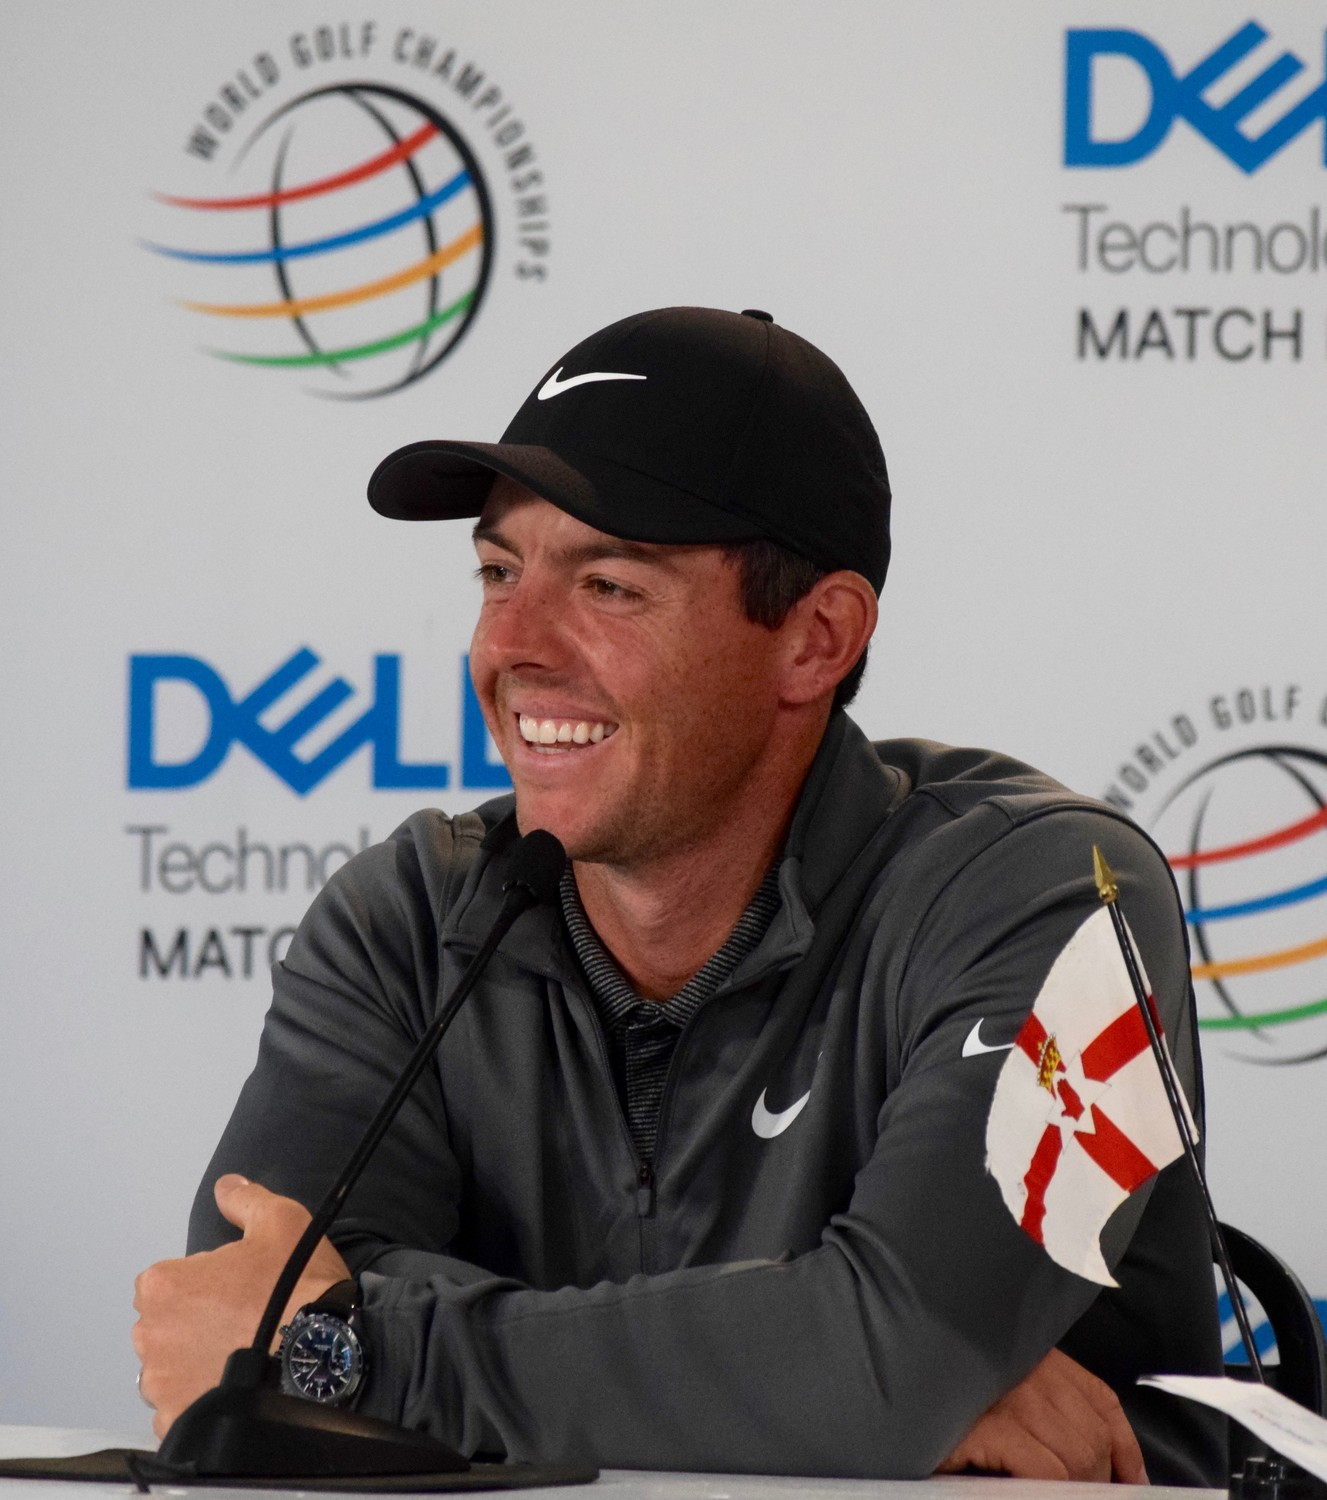 Rory McIlroy will face off with Brian Harman, former Texas golfer Jhonattan Vegas and Peter Uihlein in pool play at the WGC-Dell Technologies Match Play this week.